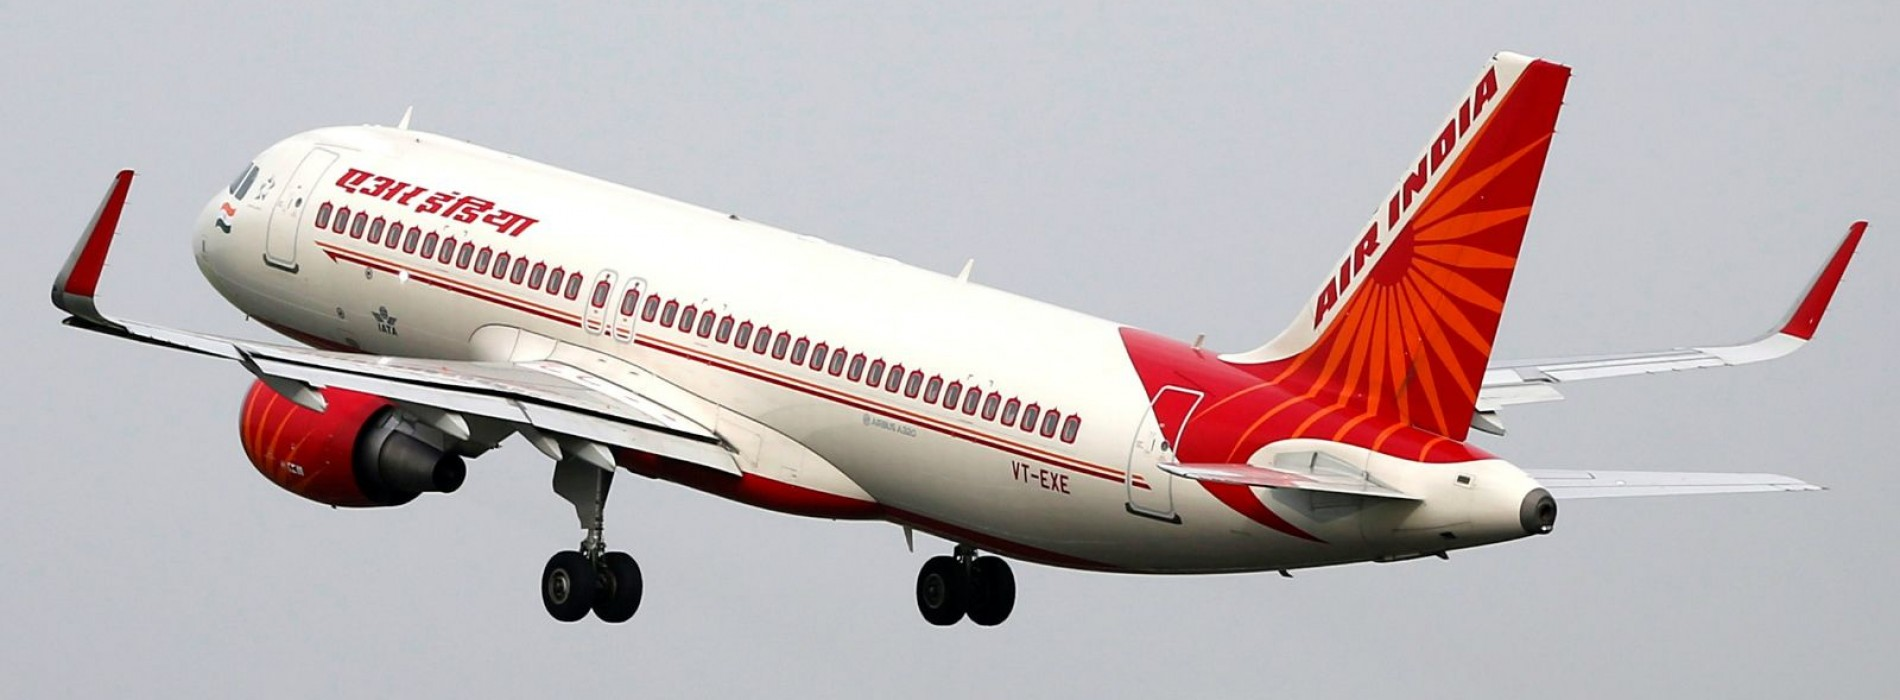 Booking.com partners with Air India to power its online accommodation offering